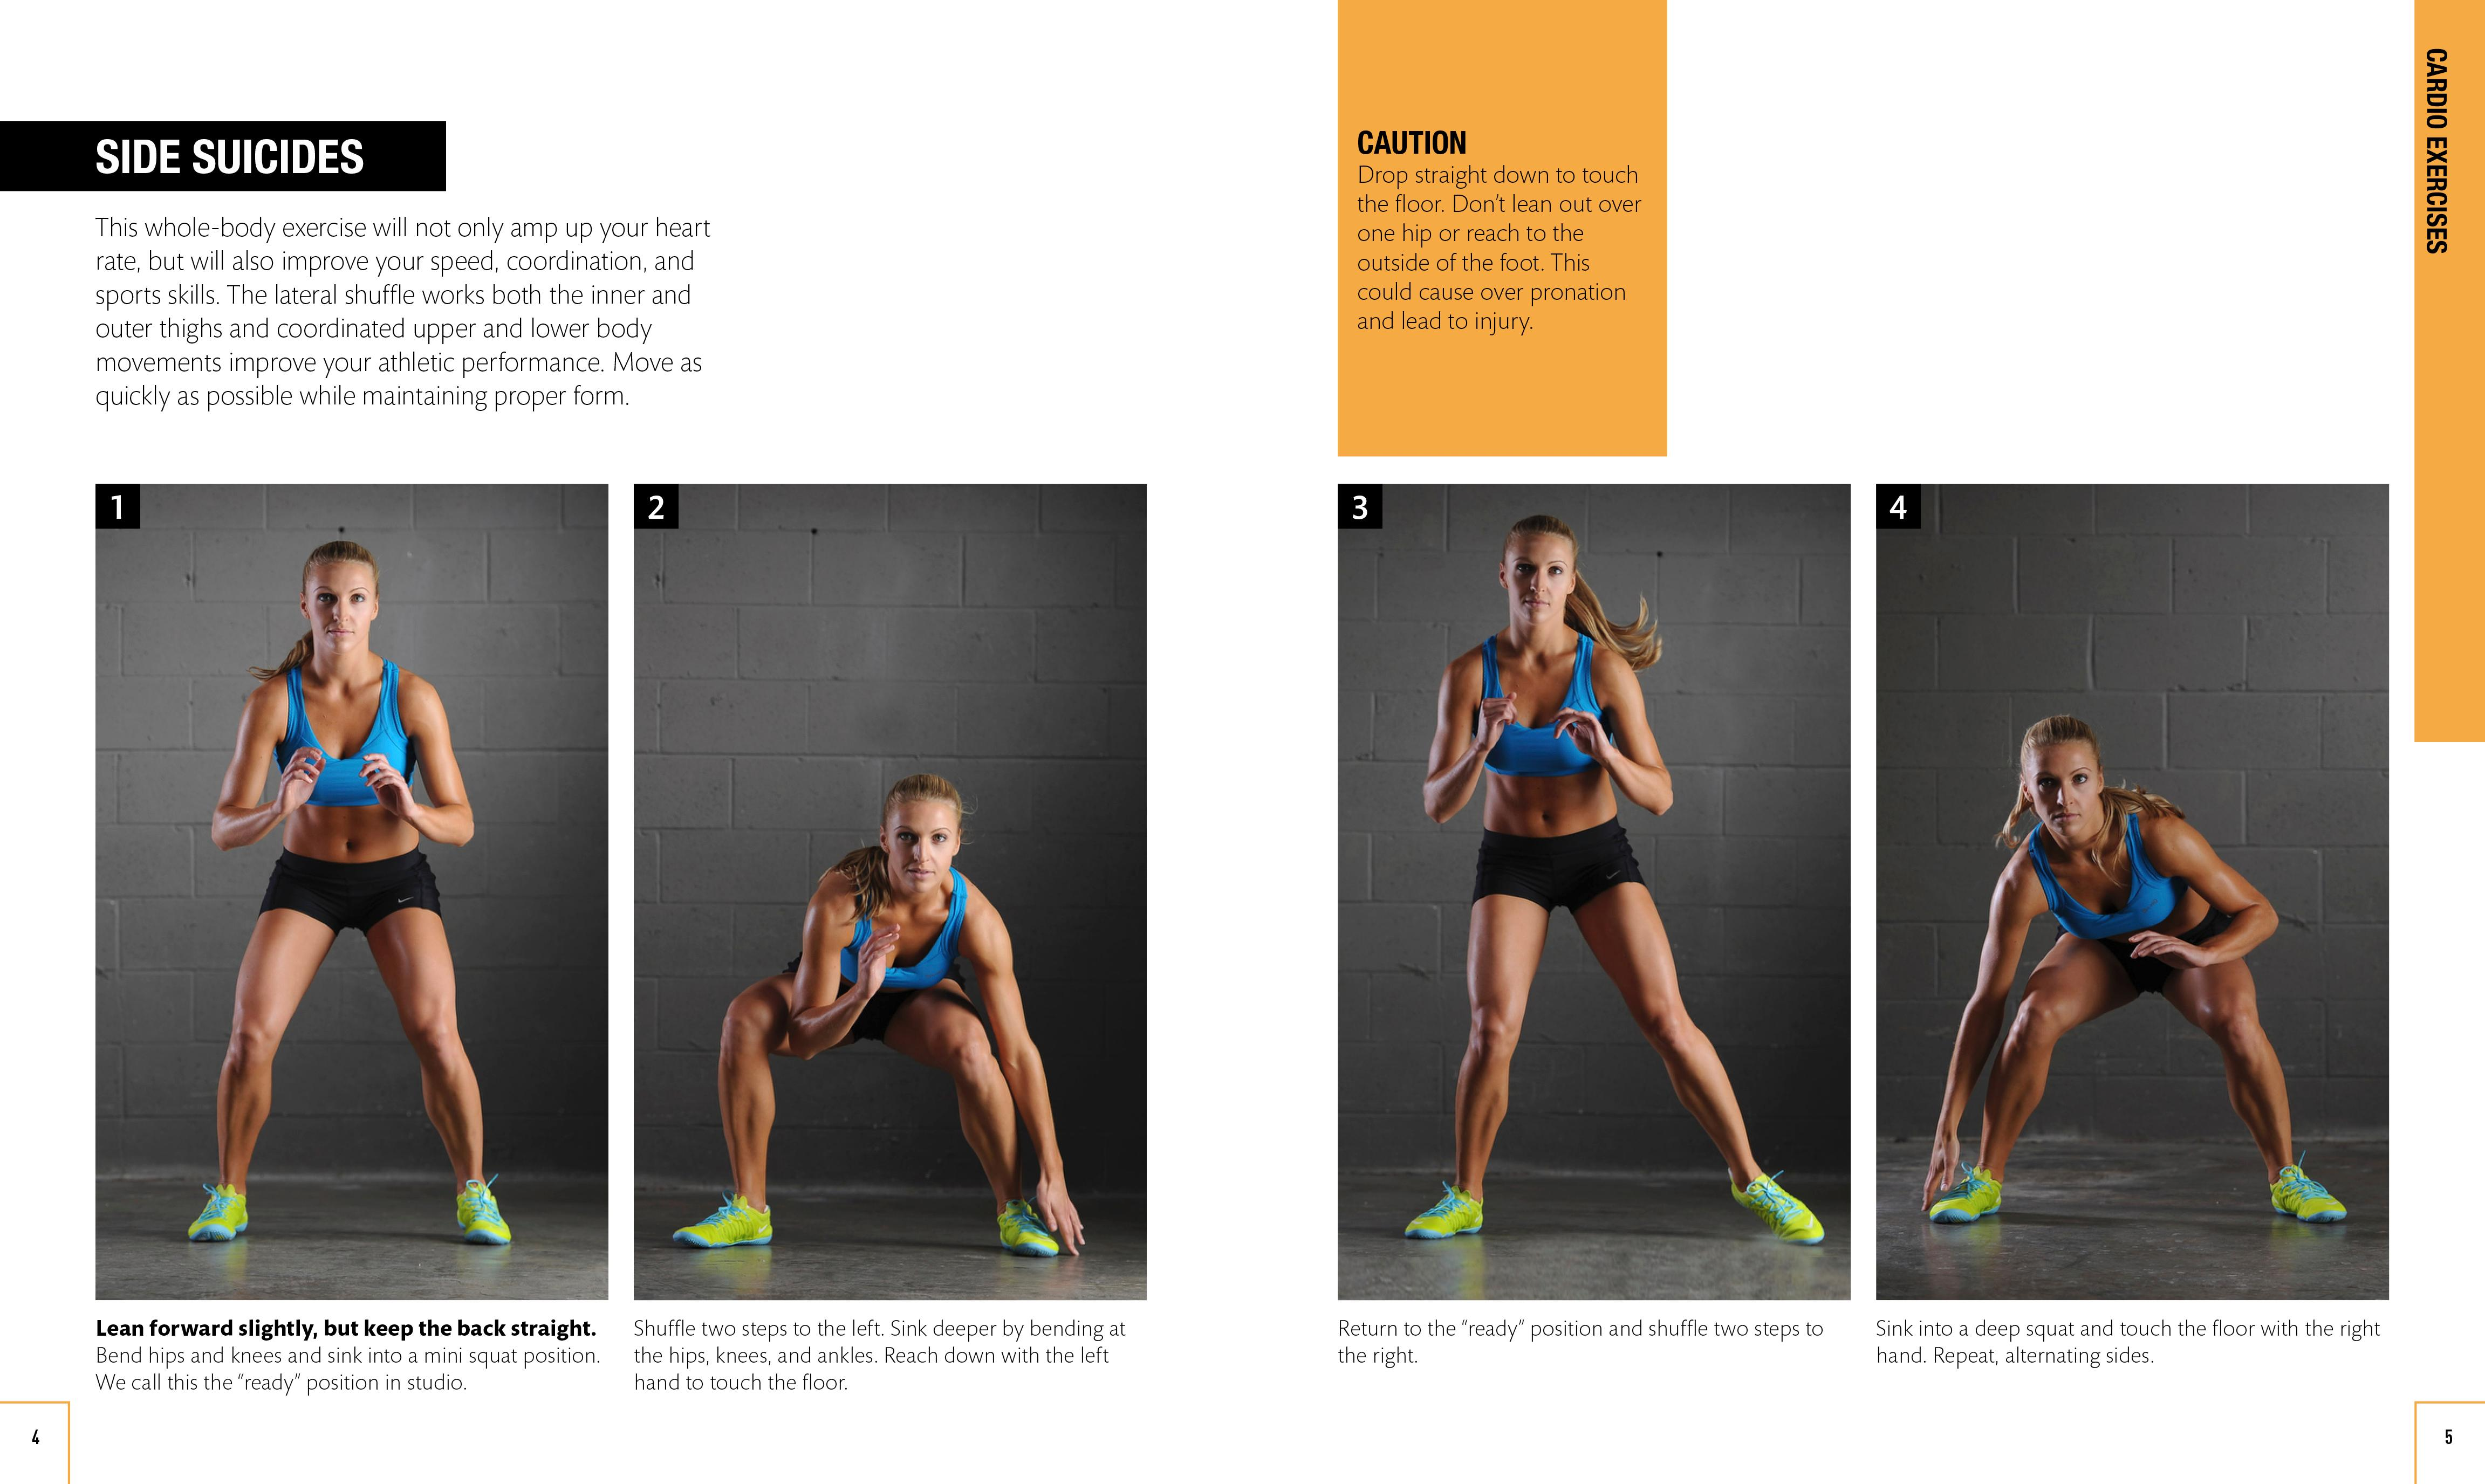 High Intensity Interval Training For Women Burn More Fat In Less See A Robot Workout View Larger